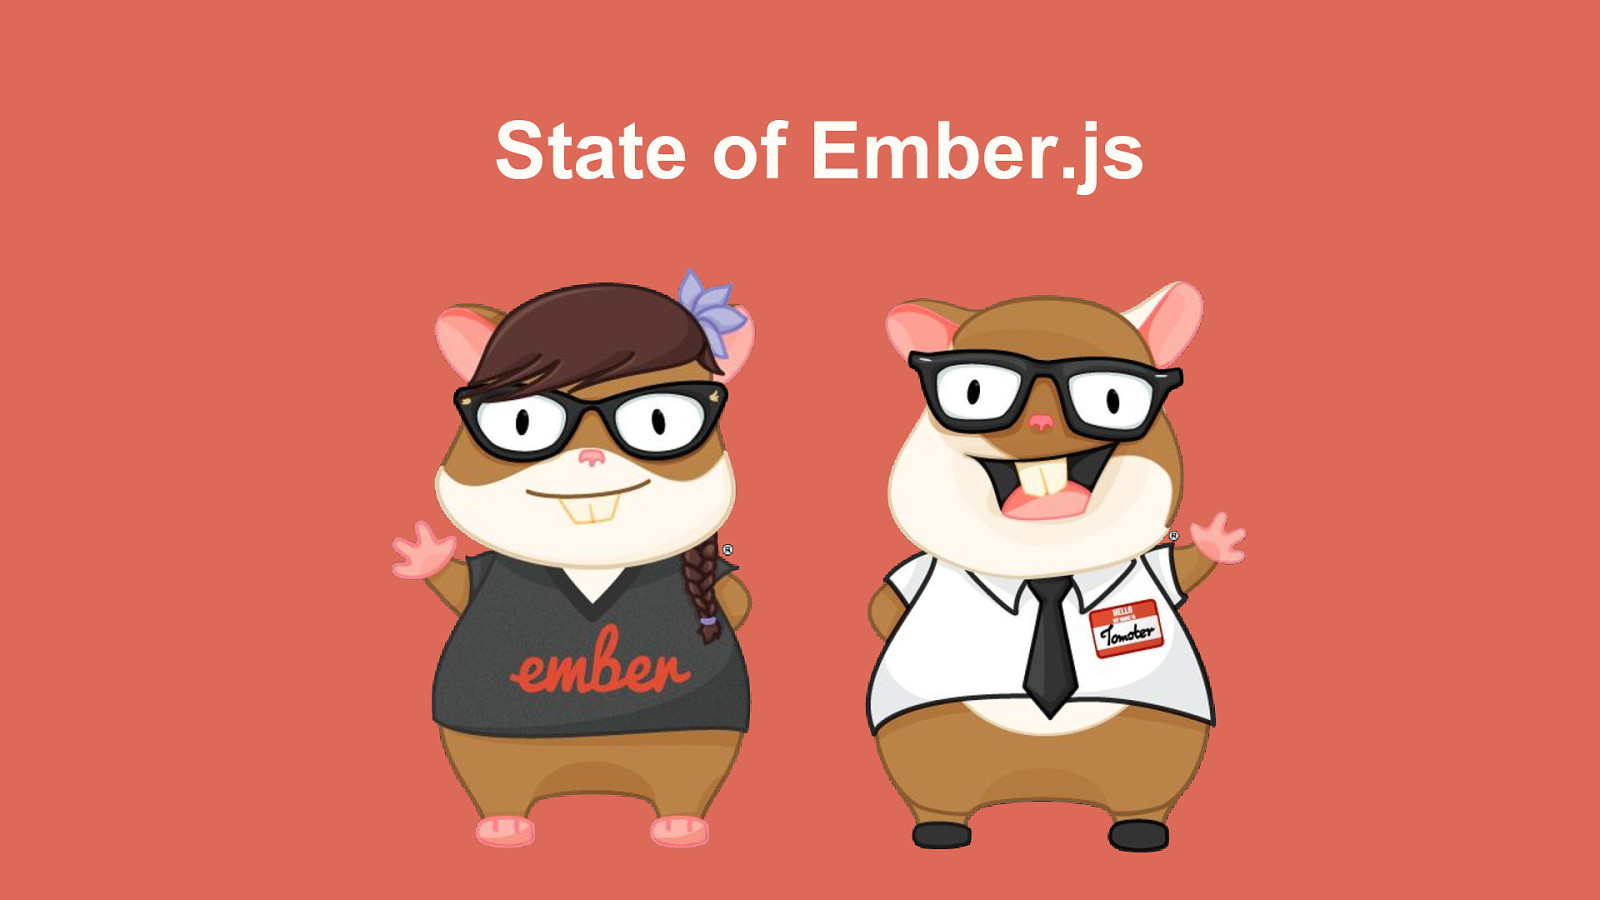 State of Ember.js